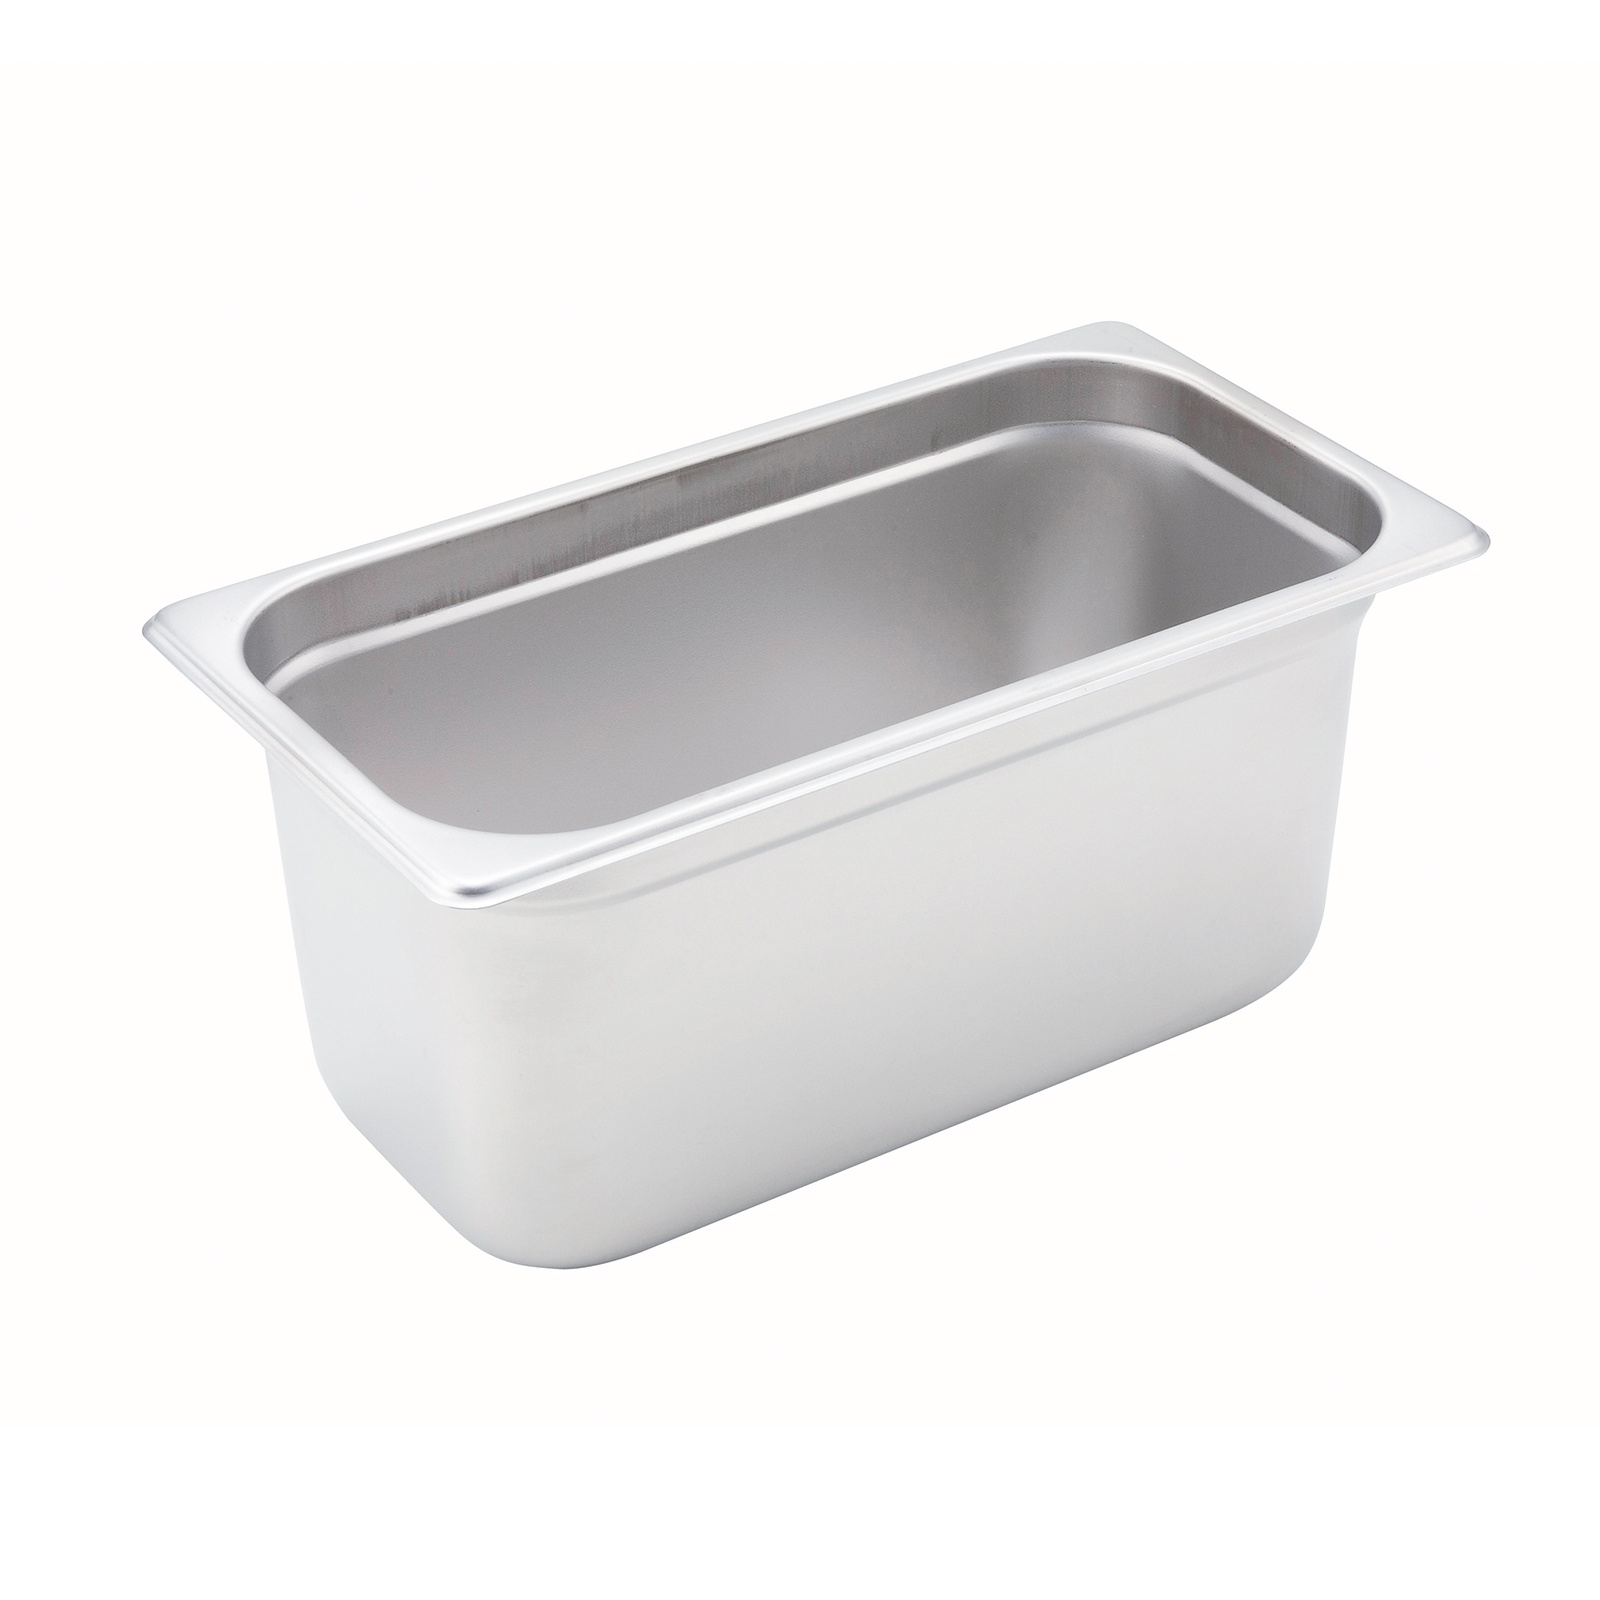 Winco SPJH-306 steam table pan, stainless steel